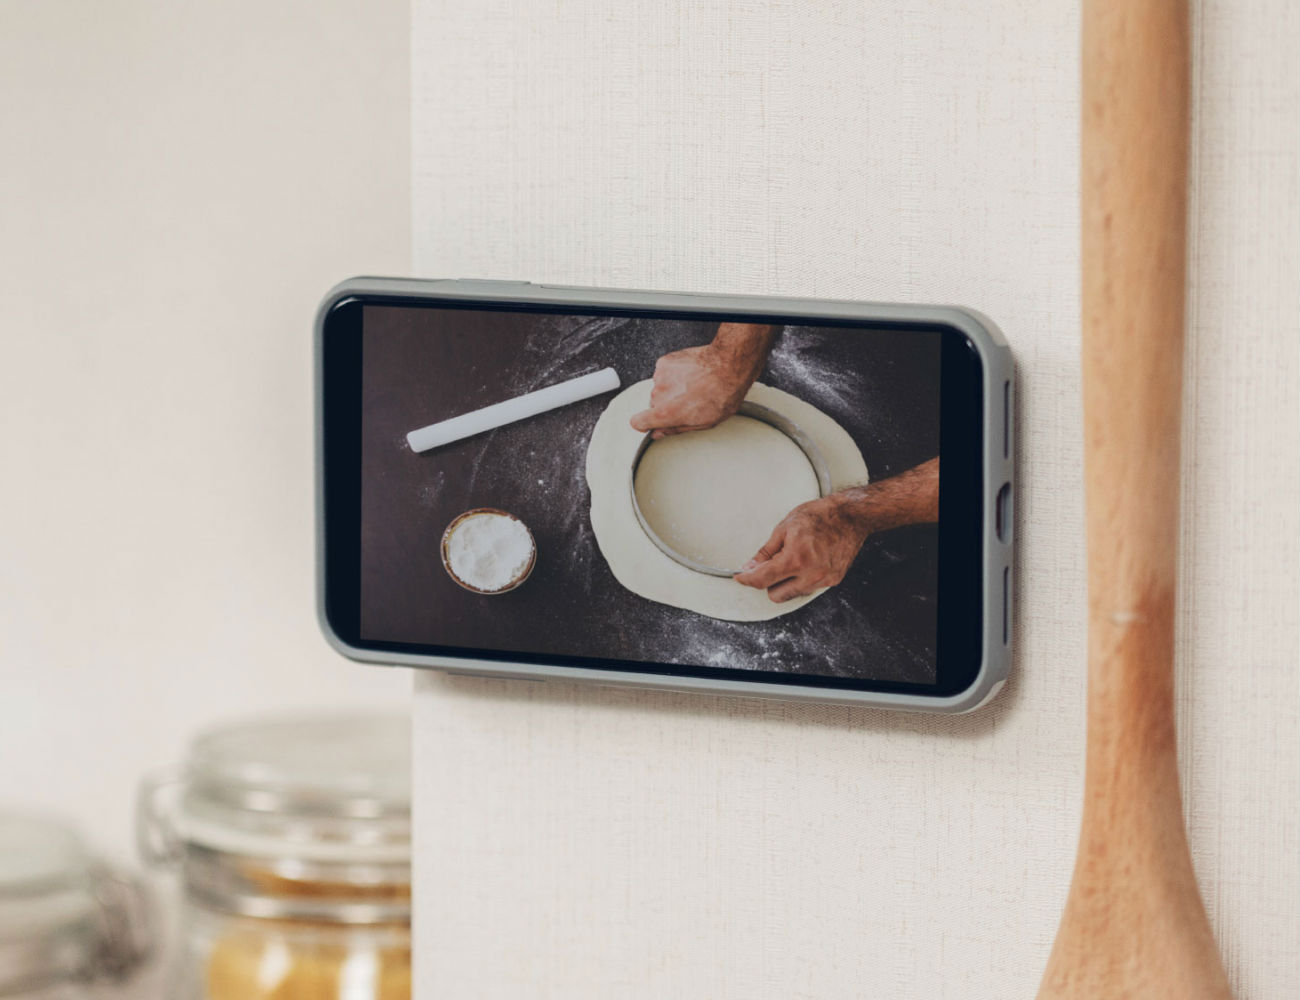 Moshi SnapTo Magnetic Mounting System